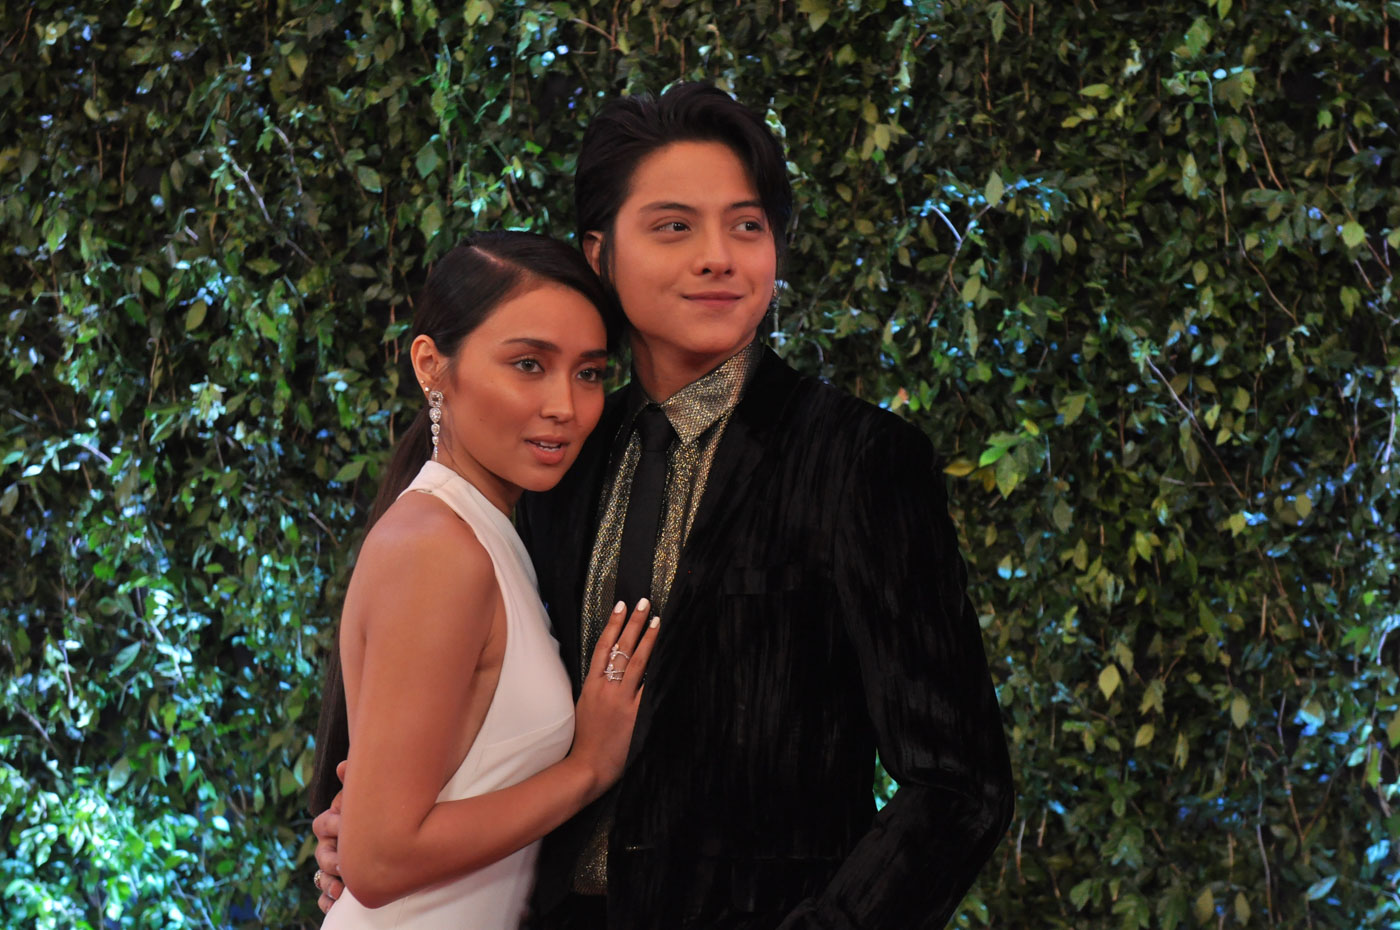 NO PROJECTS FOR 2019. Kathryn Bernardo confirms she and Daniel Padilla will not be working on any project together in 2019 to pursue other solo endeavors. File photo by Jay Ganzon/Rappler